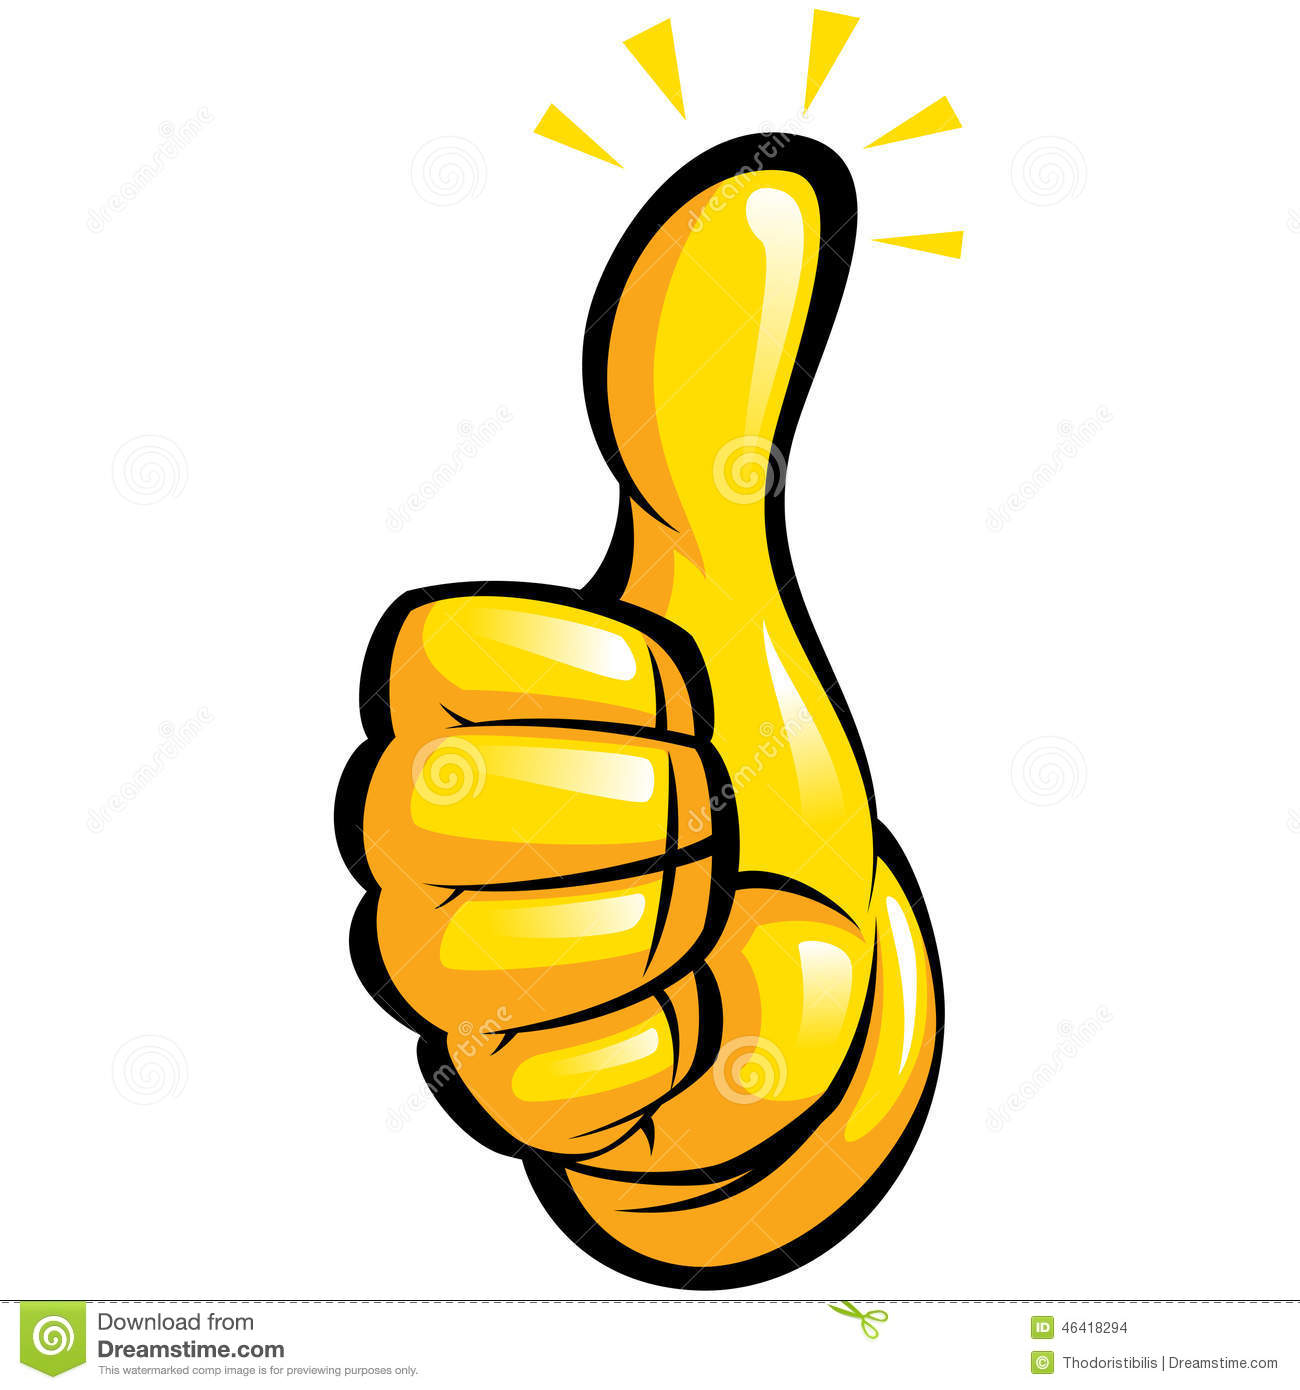 Hand With Yellow Glove In A Fun Thumbs Up Gesture Stock